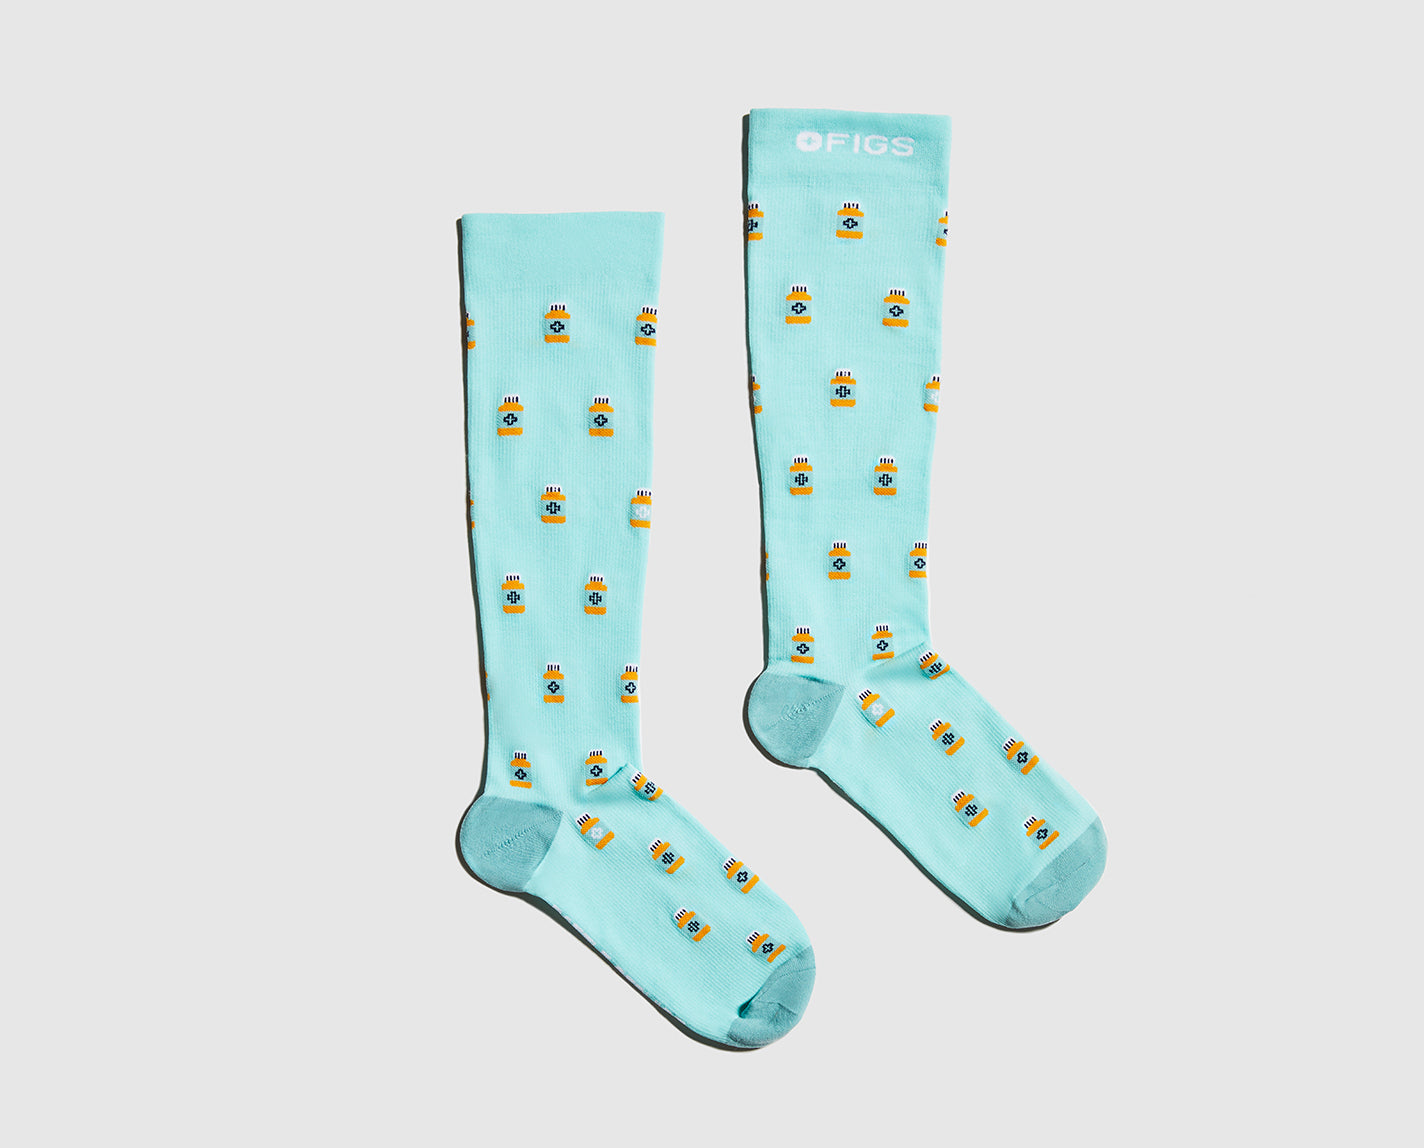 Because miniatures are fun. Our 100% Awesome Compression Socks are ridiculously soft and help relieve tired and achy legs.